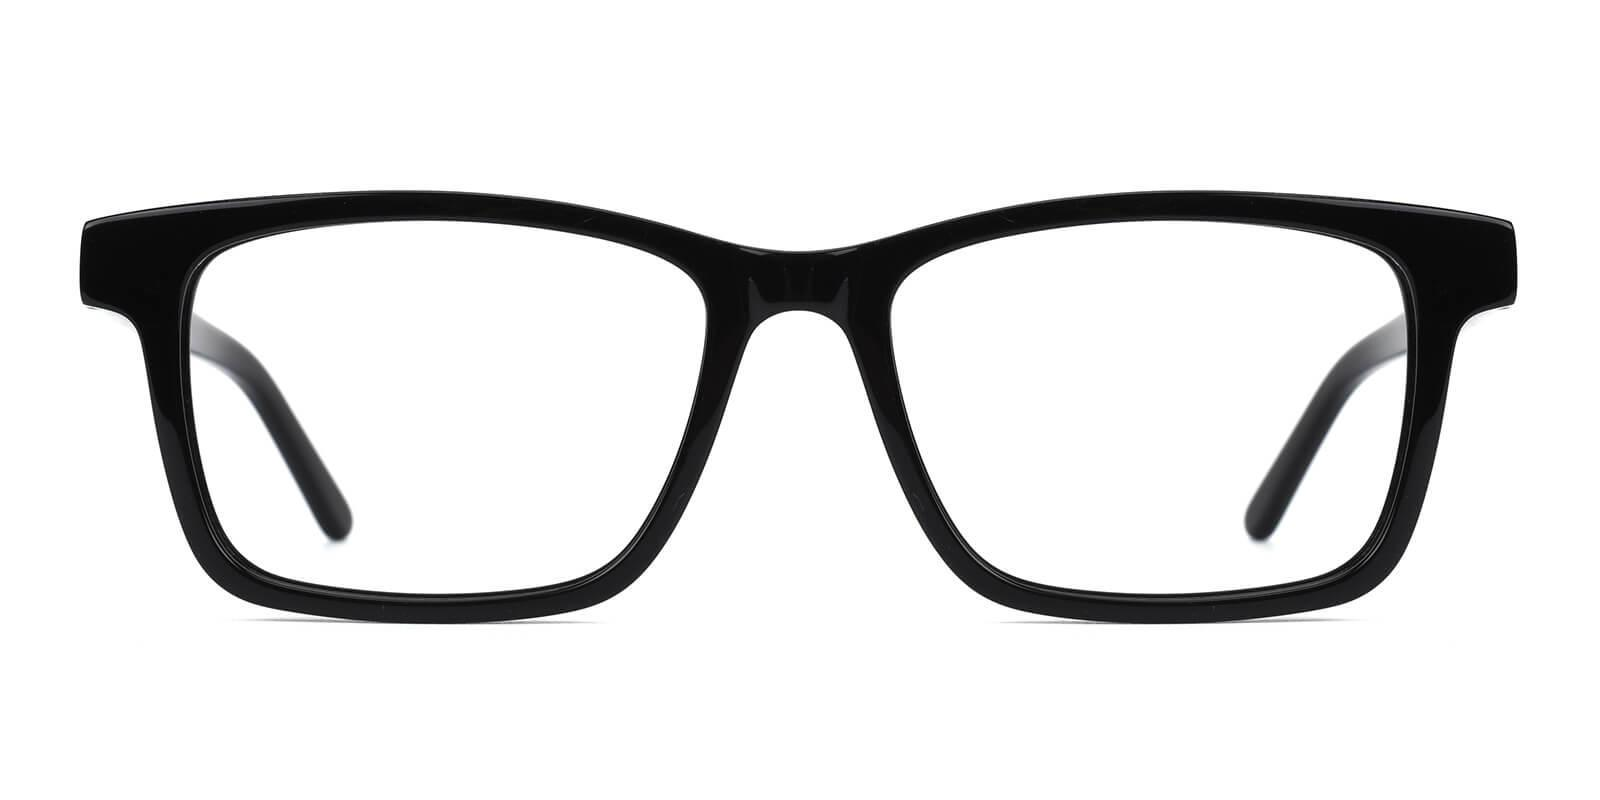 Versa Black Acetate Eyeglasses , SpringHinges , UniversalBridgeFit Frames from ABBE Glasses